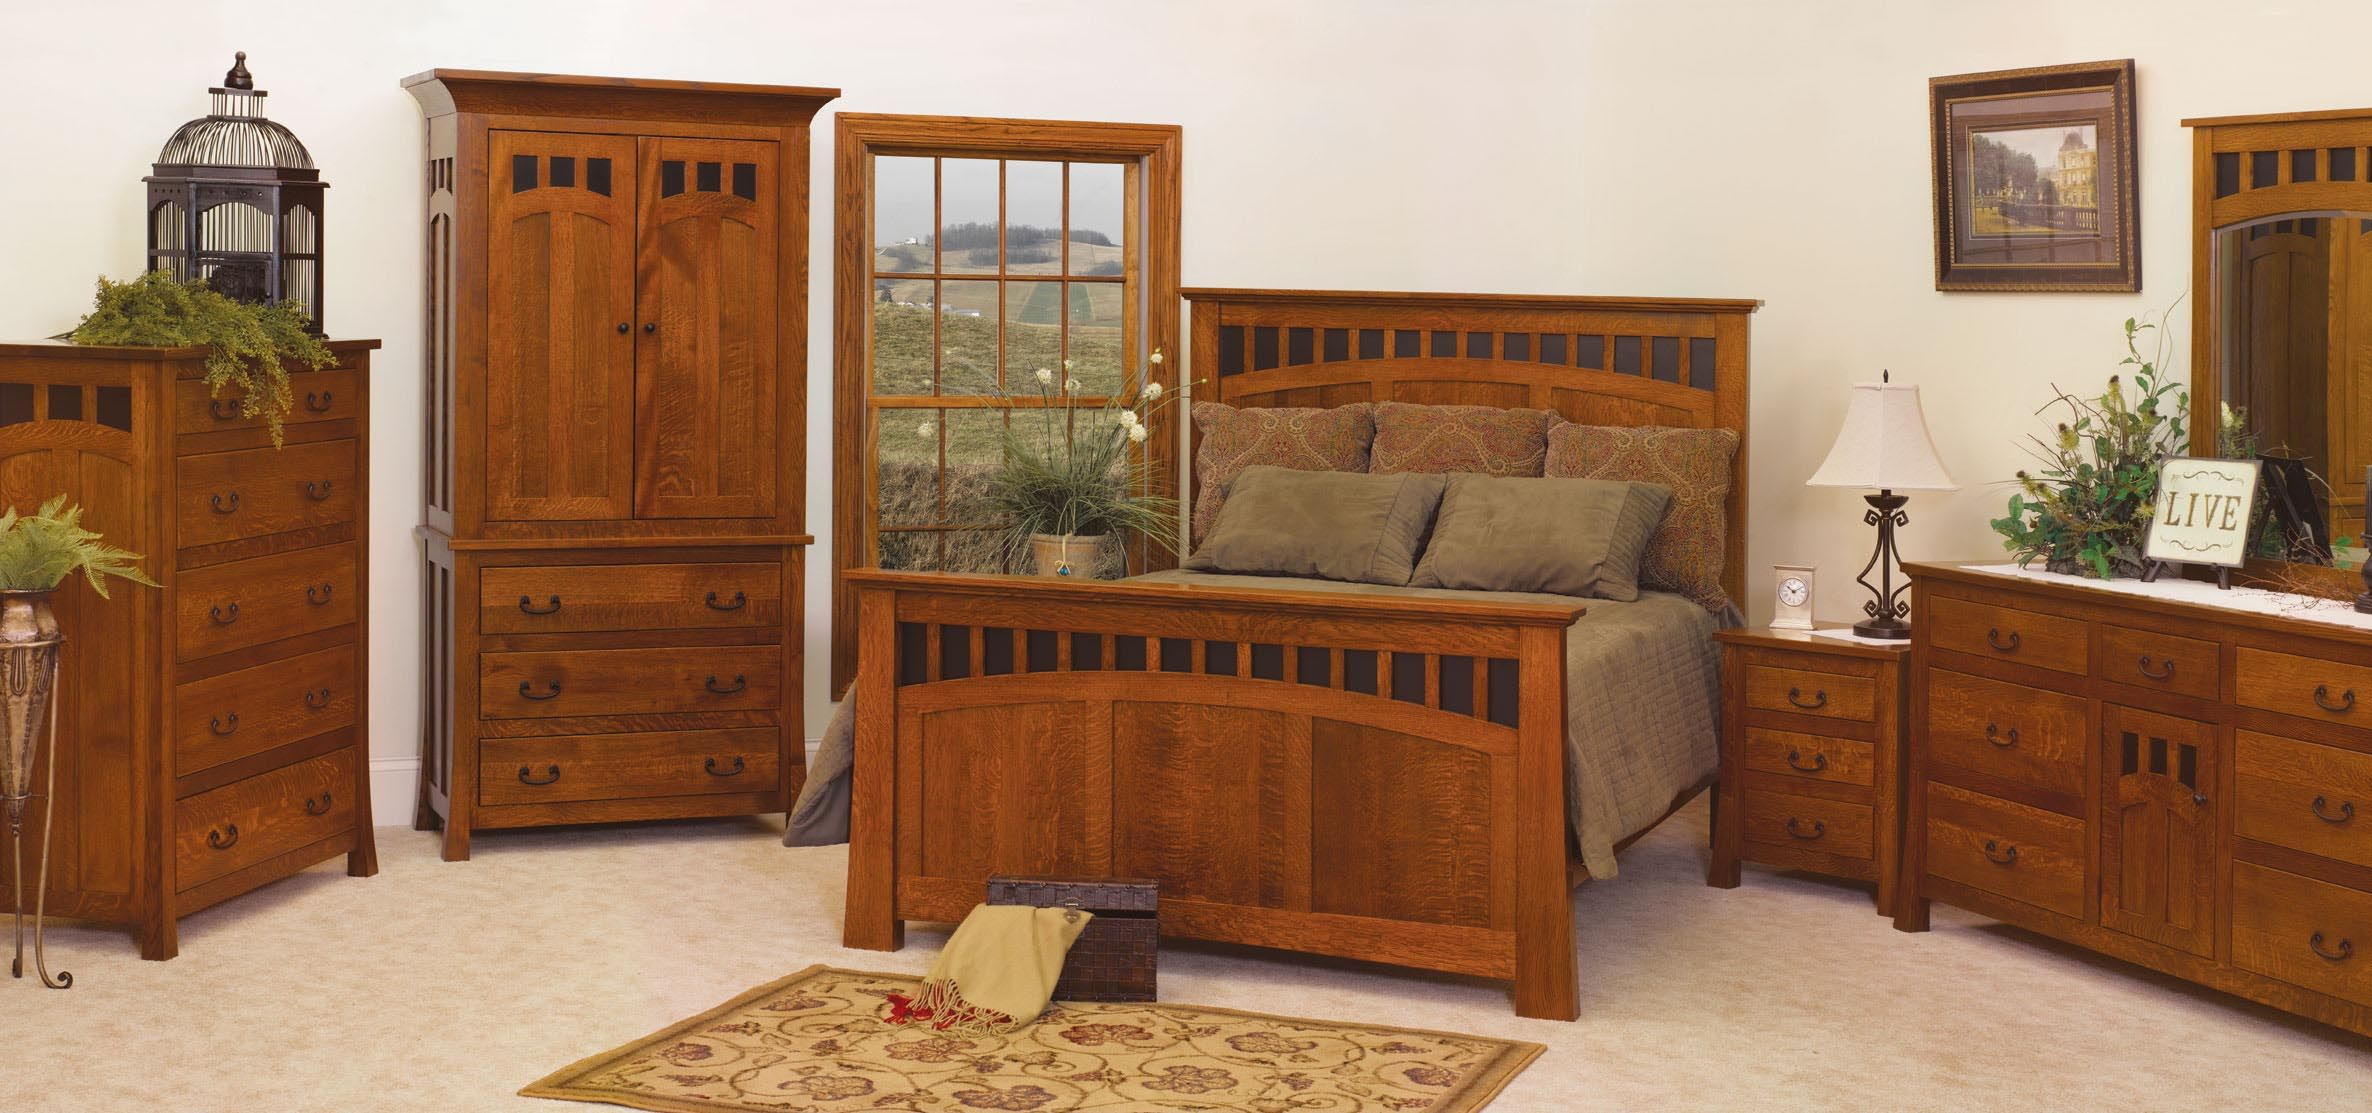 Mission Style Bedroom Furniture Sets Mission Style Bedroom